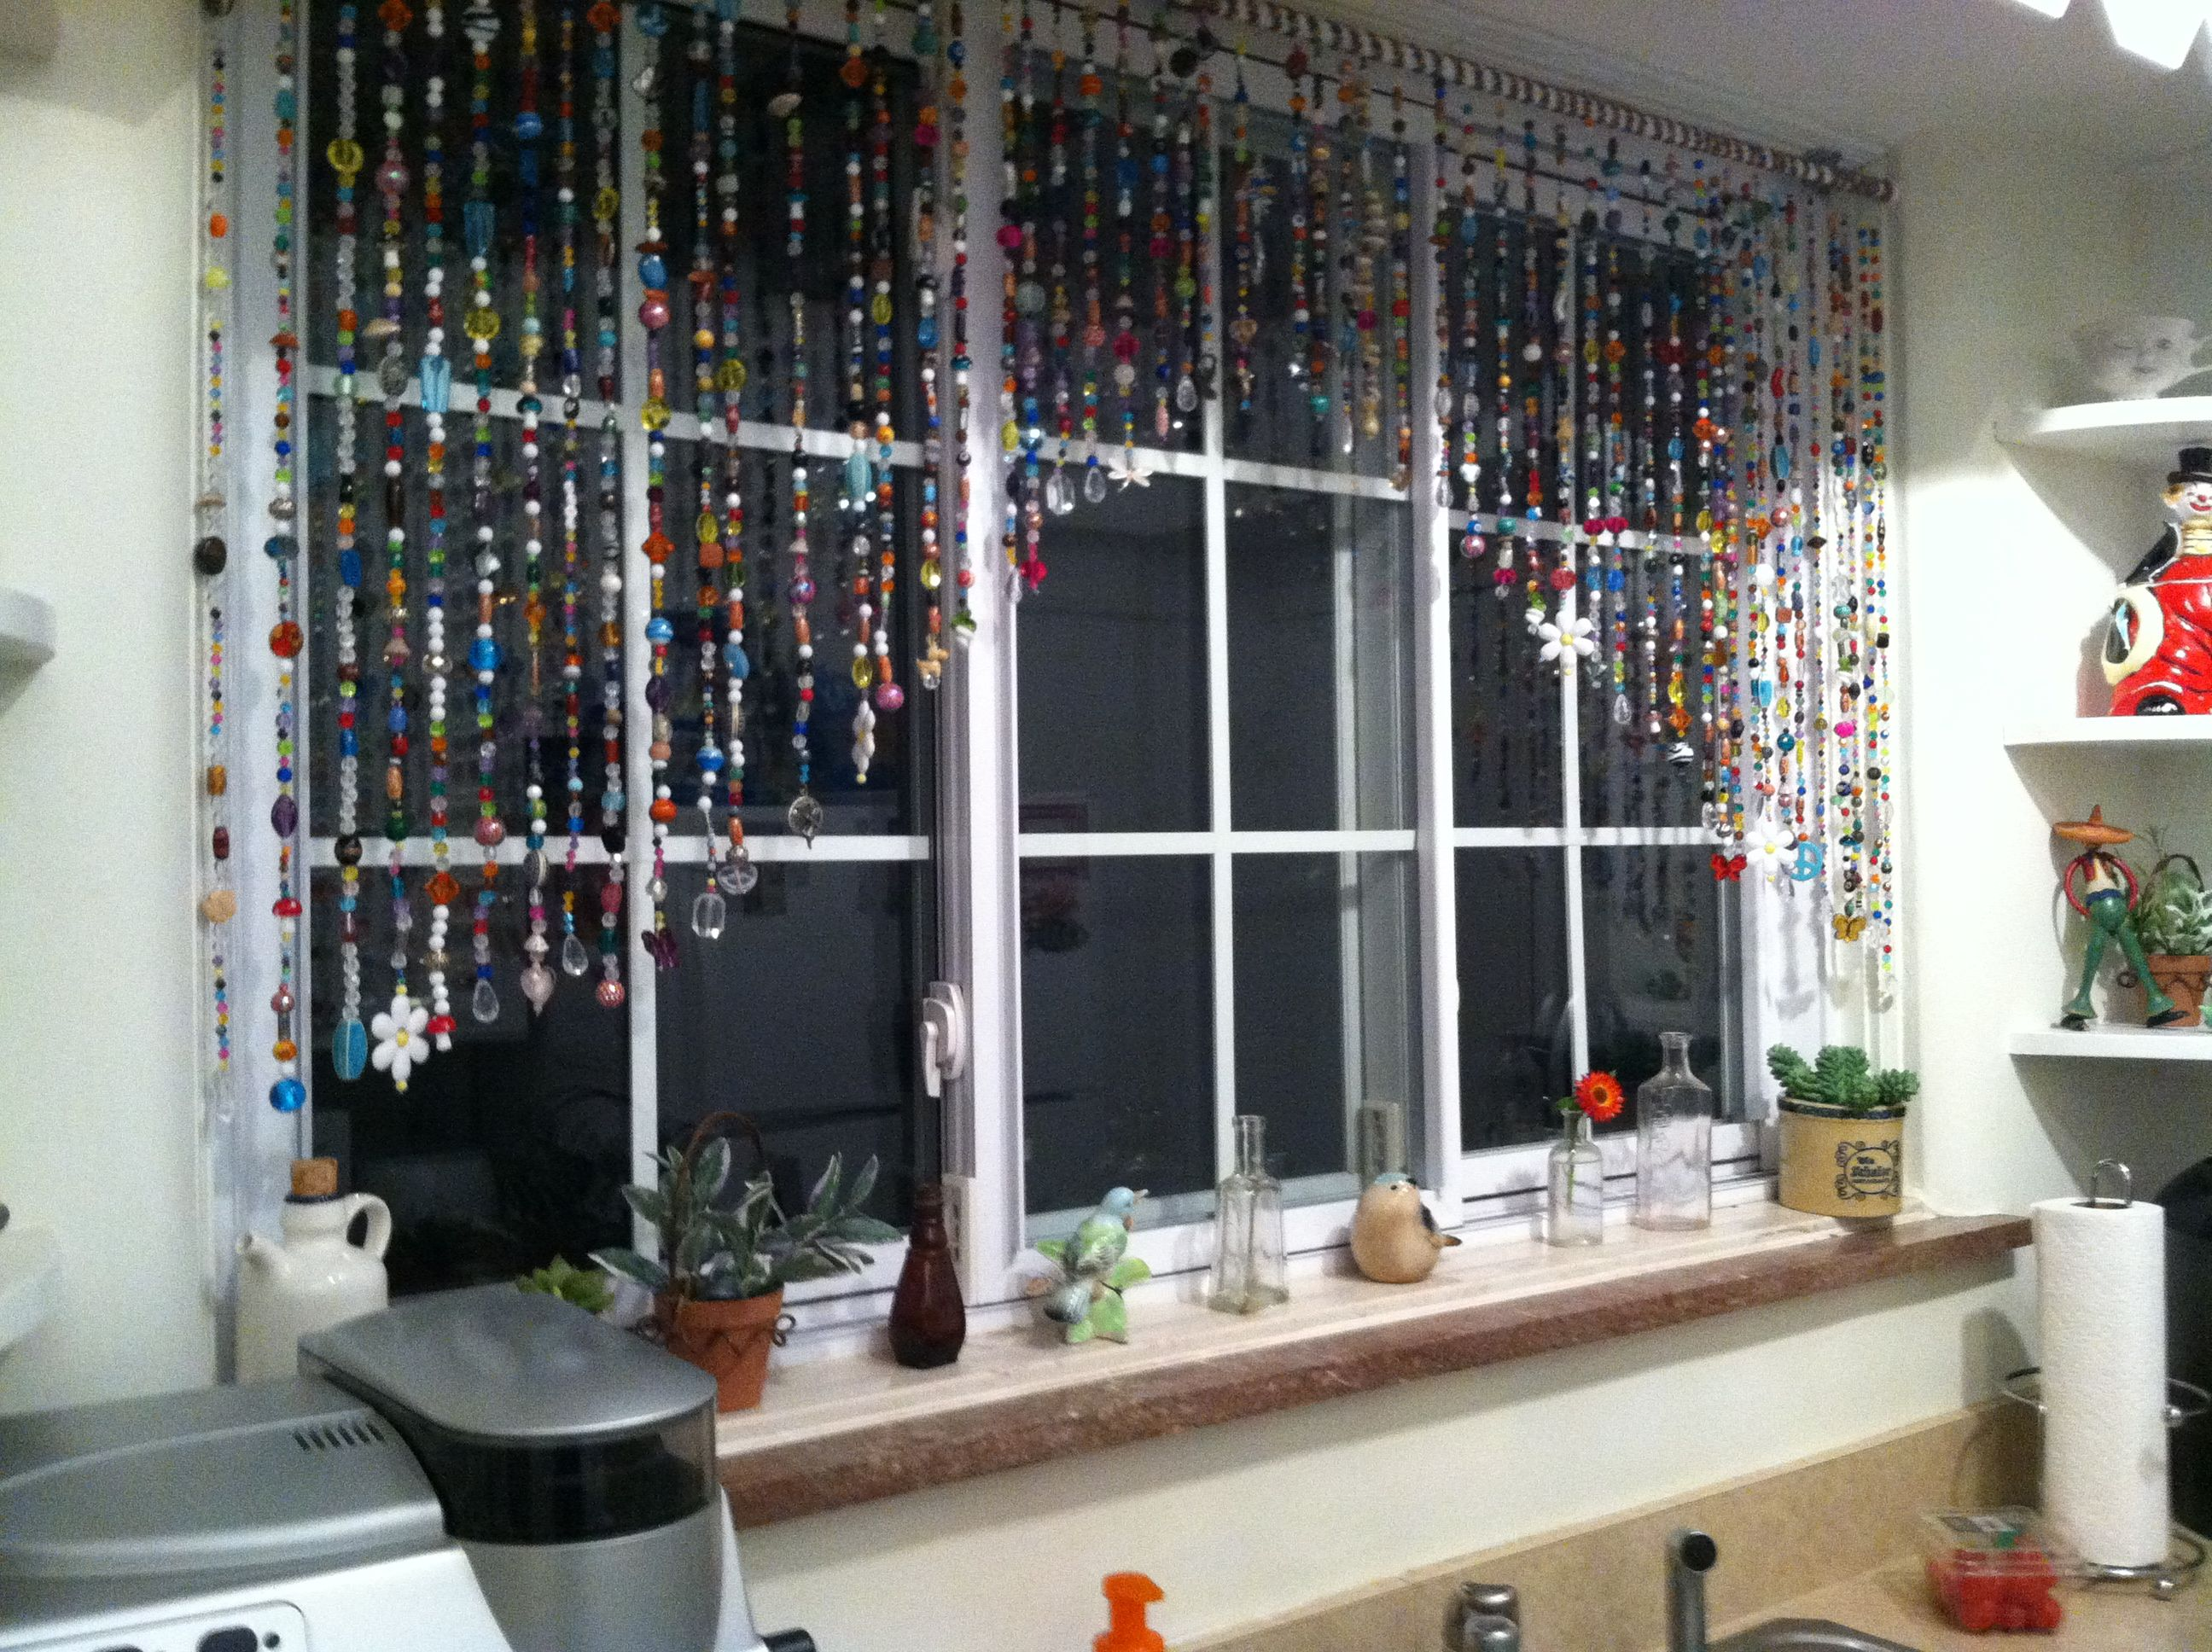 Beaded curtains so must fun to make beaded curtains